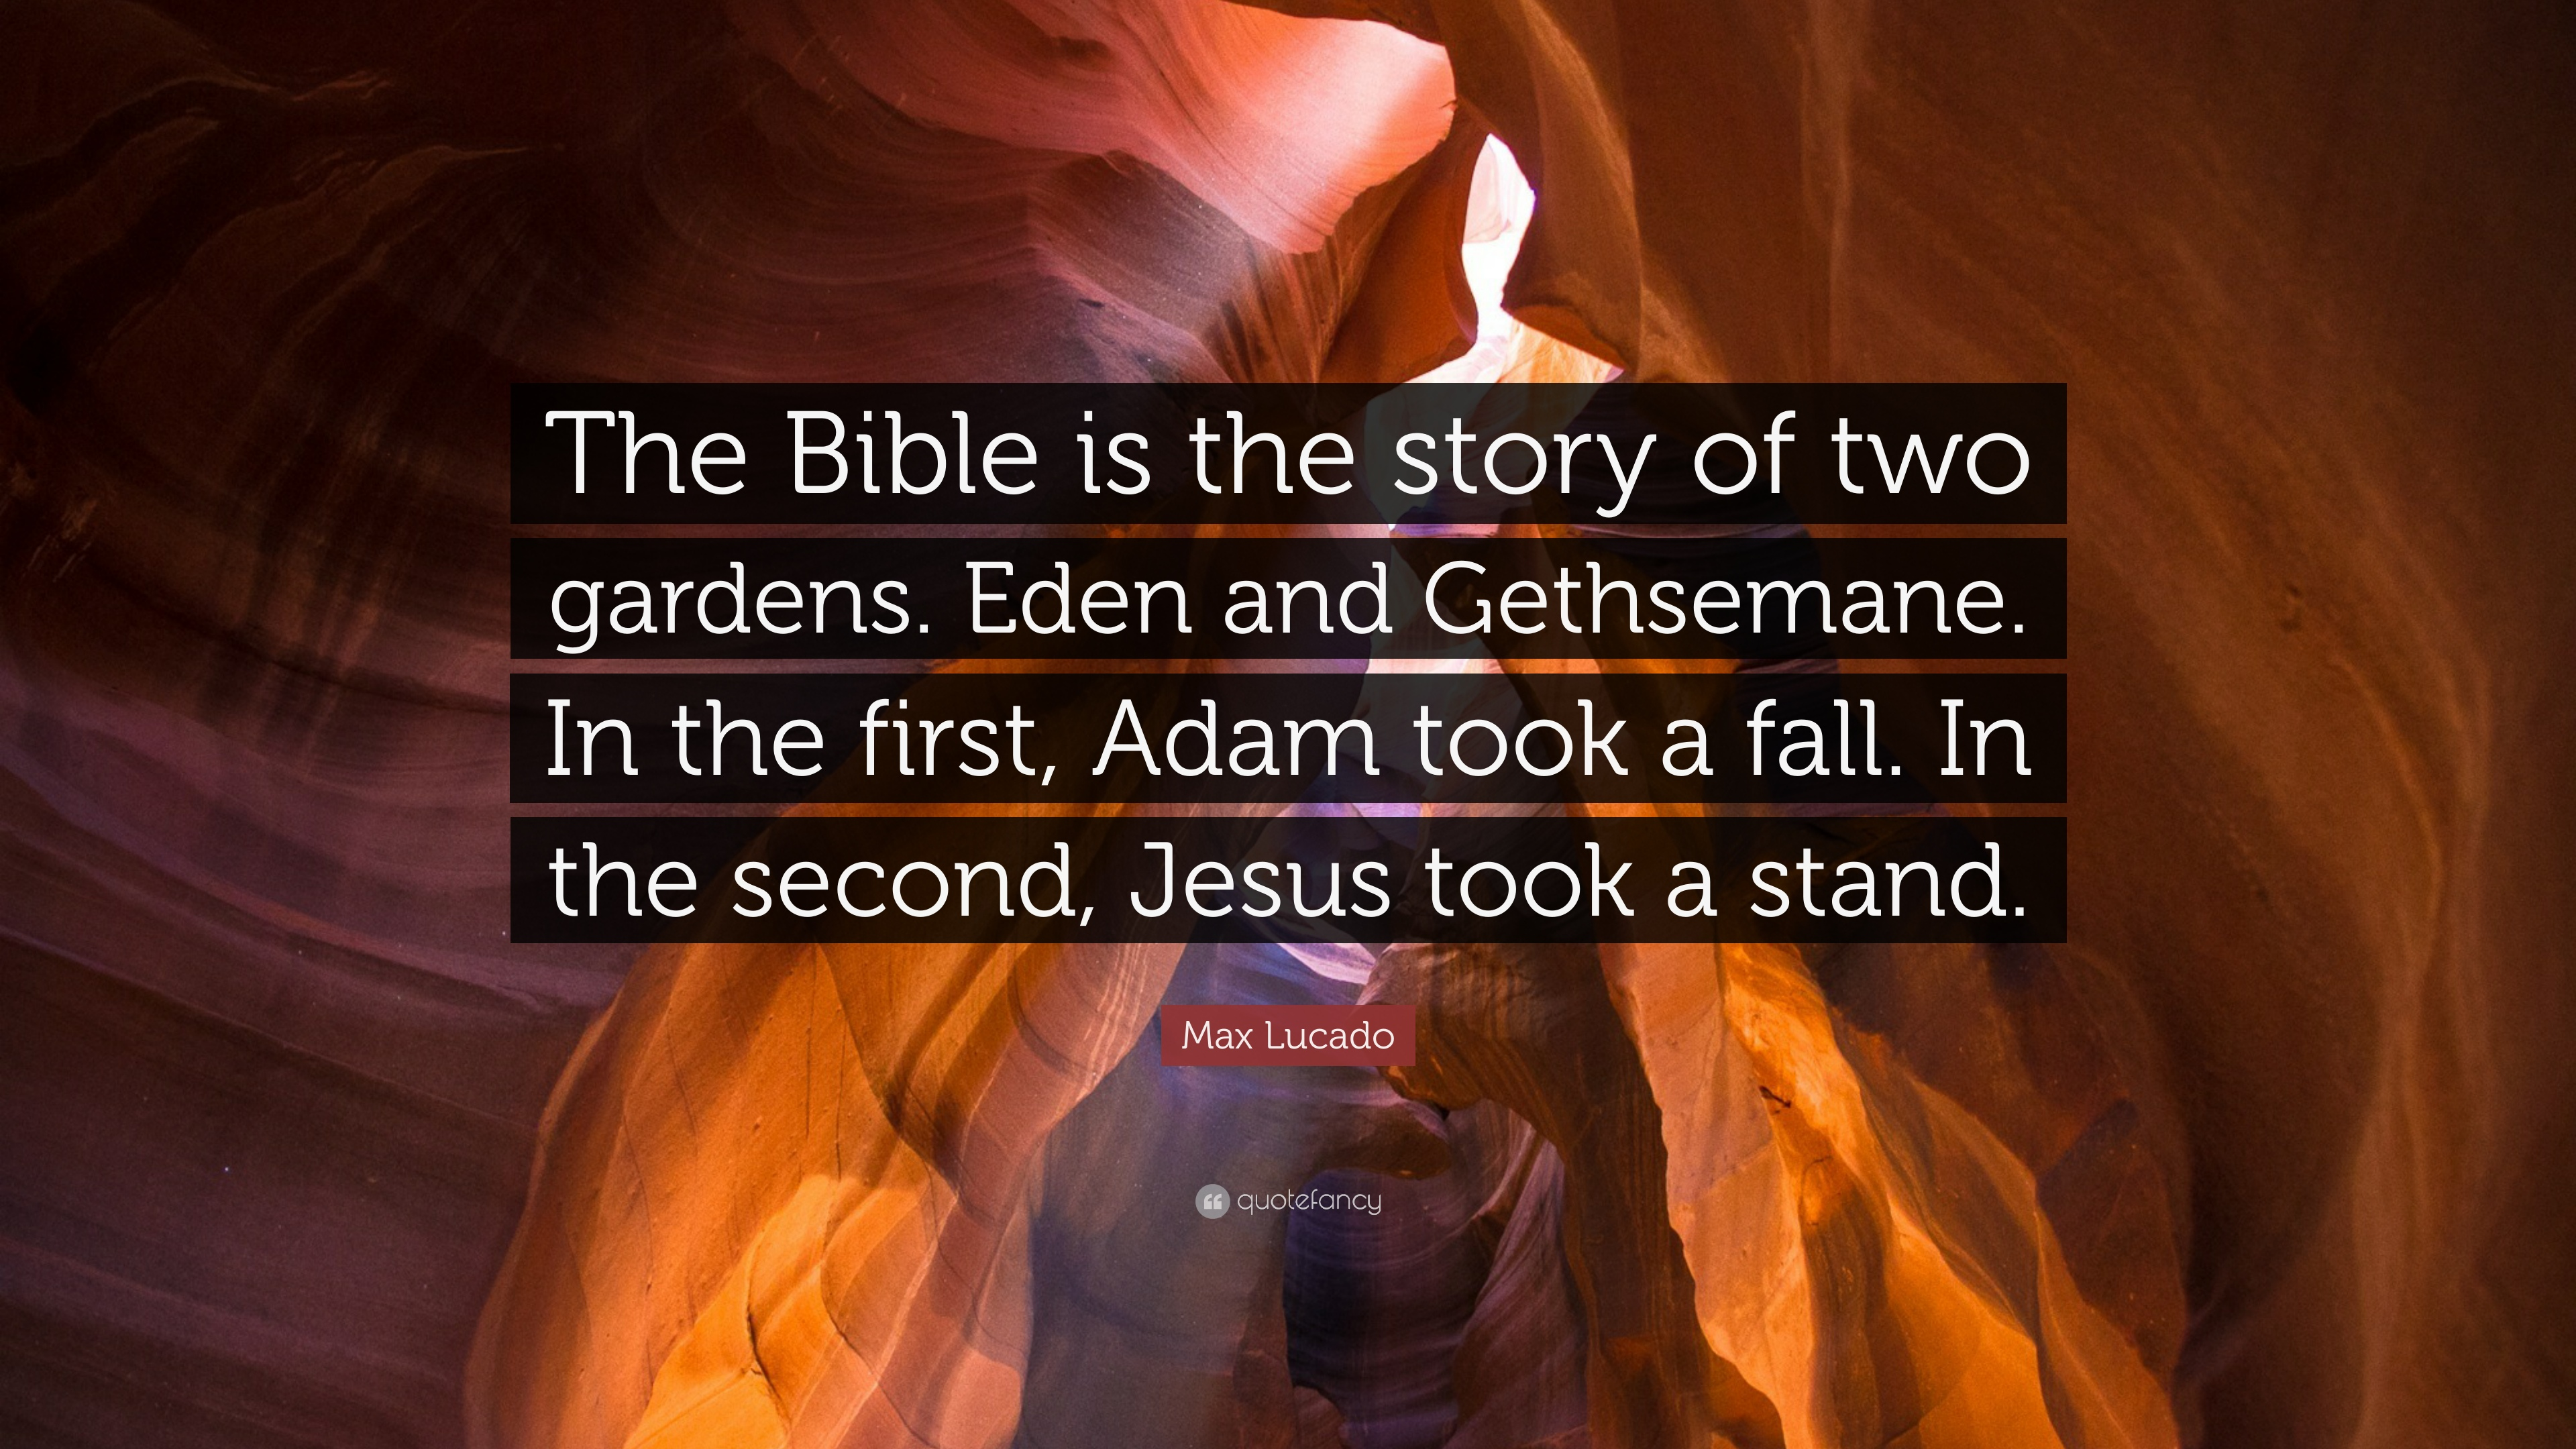 Max Lucado Quote: U201cThe Bible Is The Story Of Two Gardens. Eden And